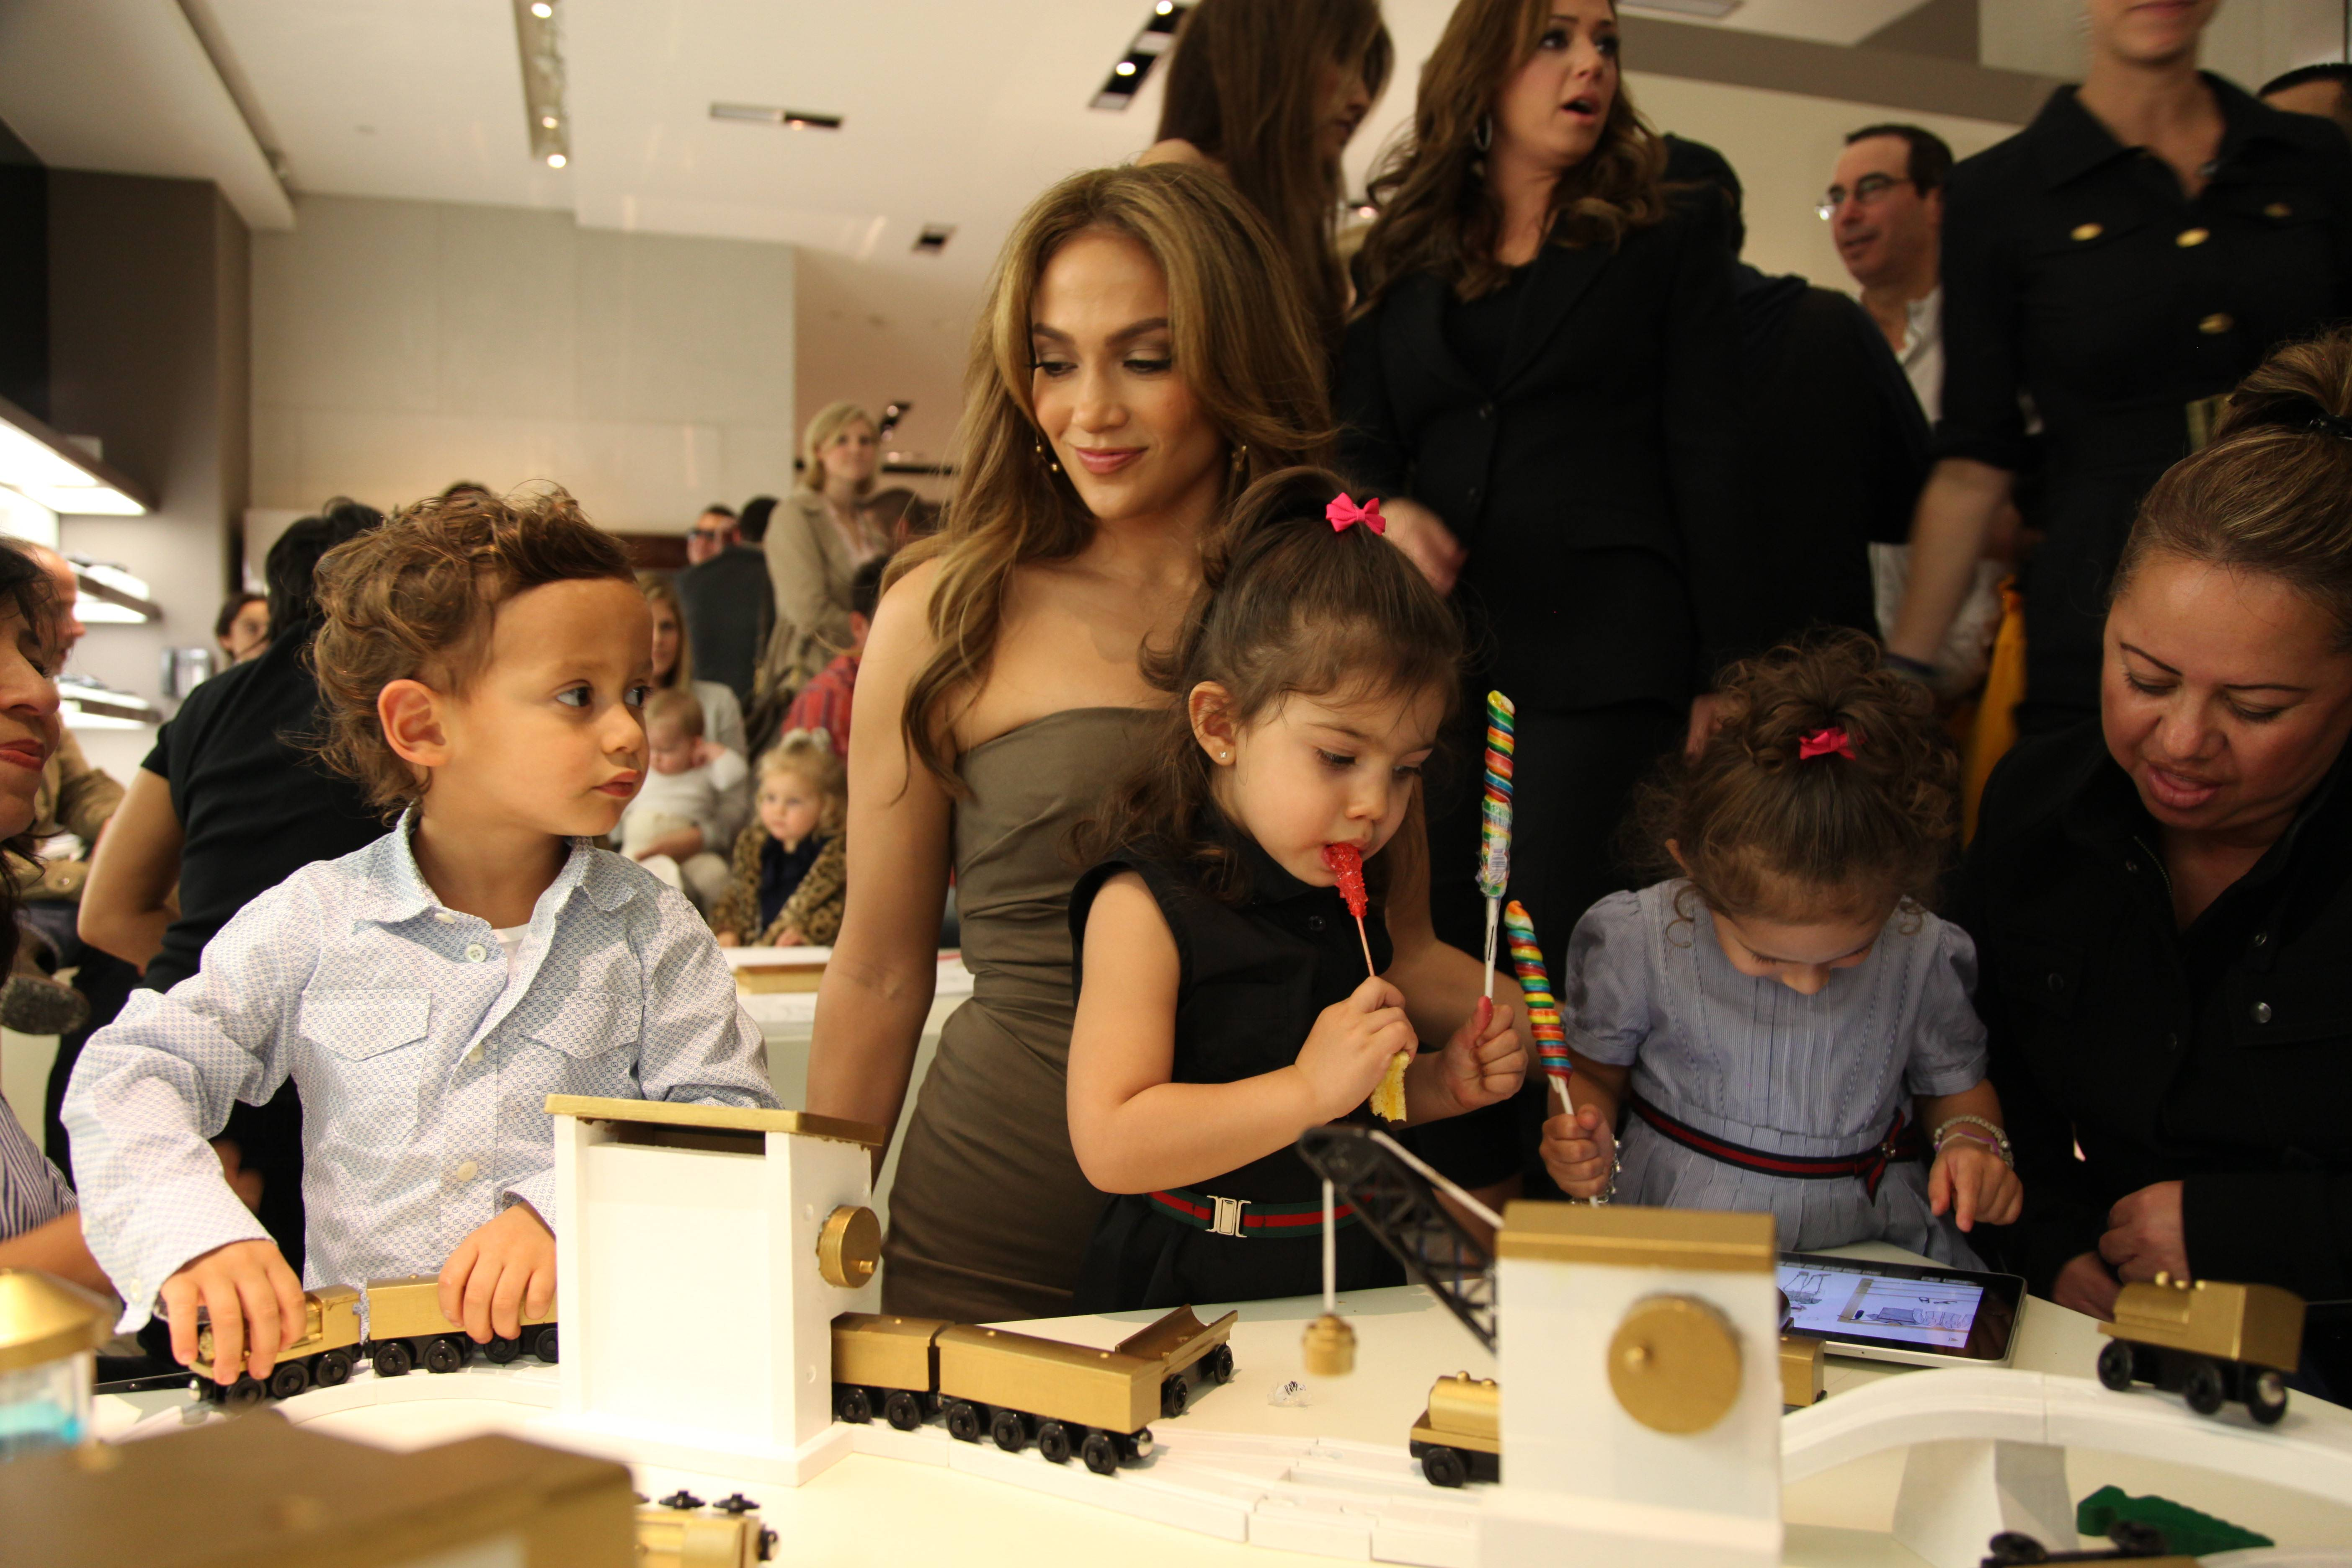 Jennifer Lopez with son Max, niece Lucie and daughter Emme